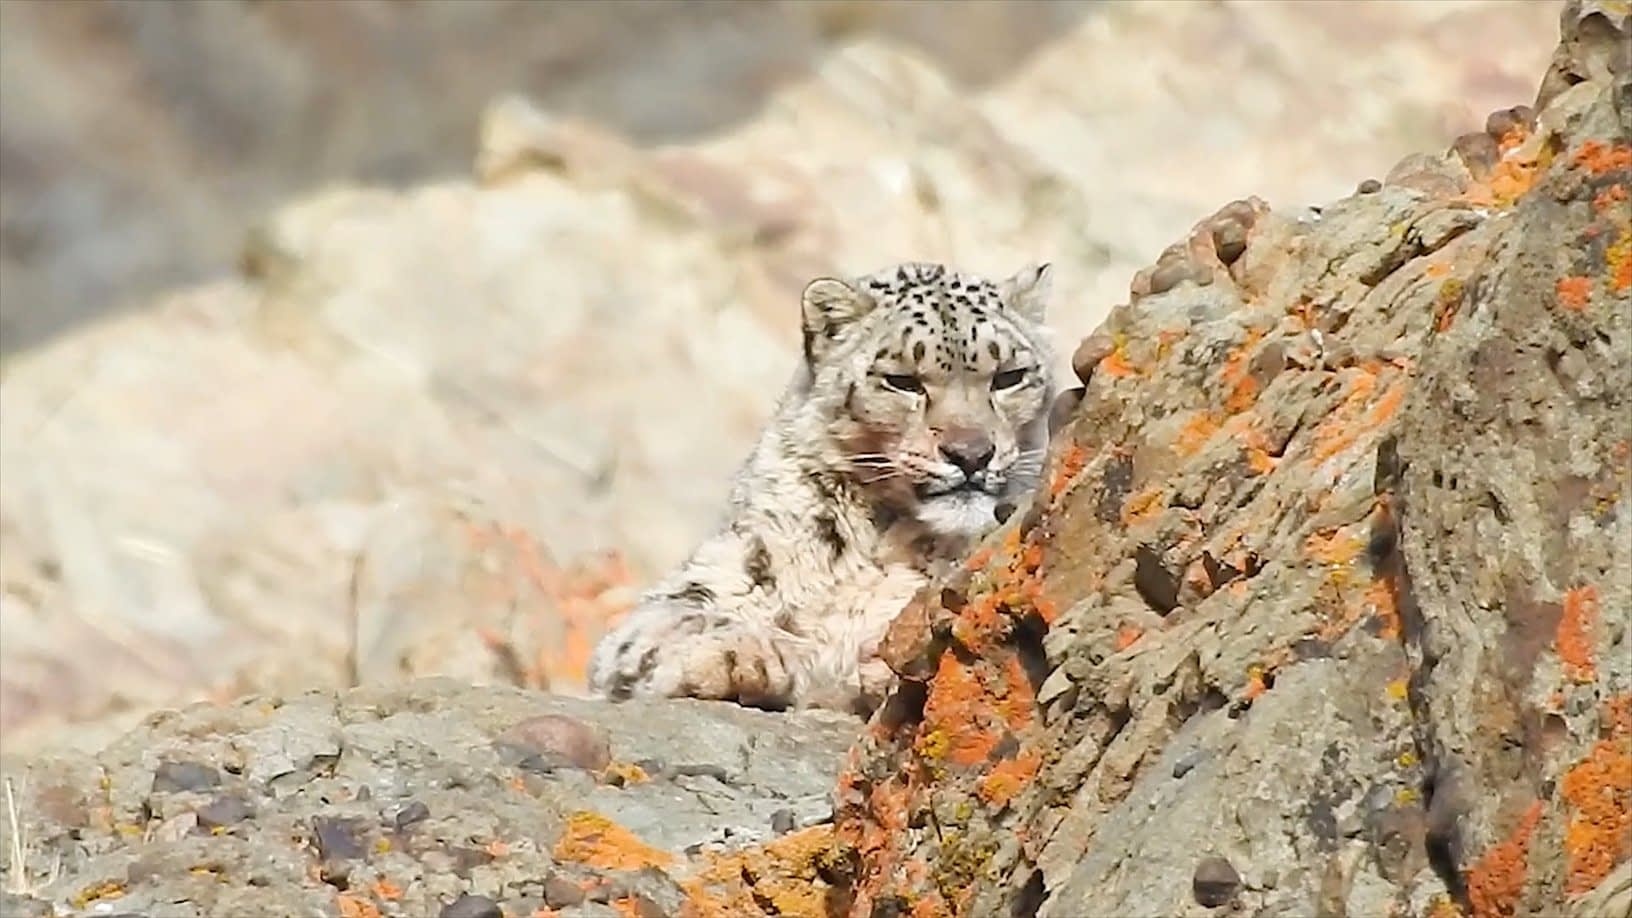 , Snow Leopard: The Ghost of the Brown Mountains|Roundglass|Sustain, TheCircularEconomy.com